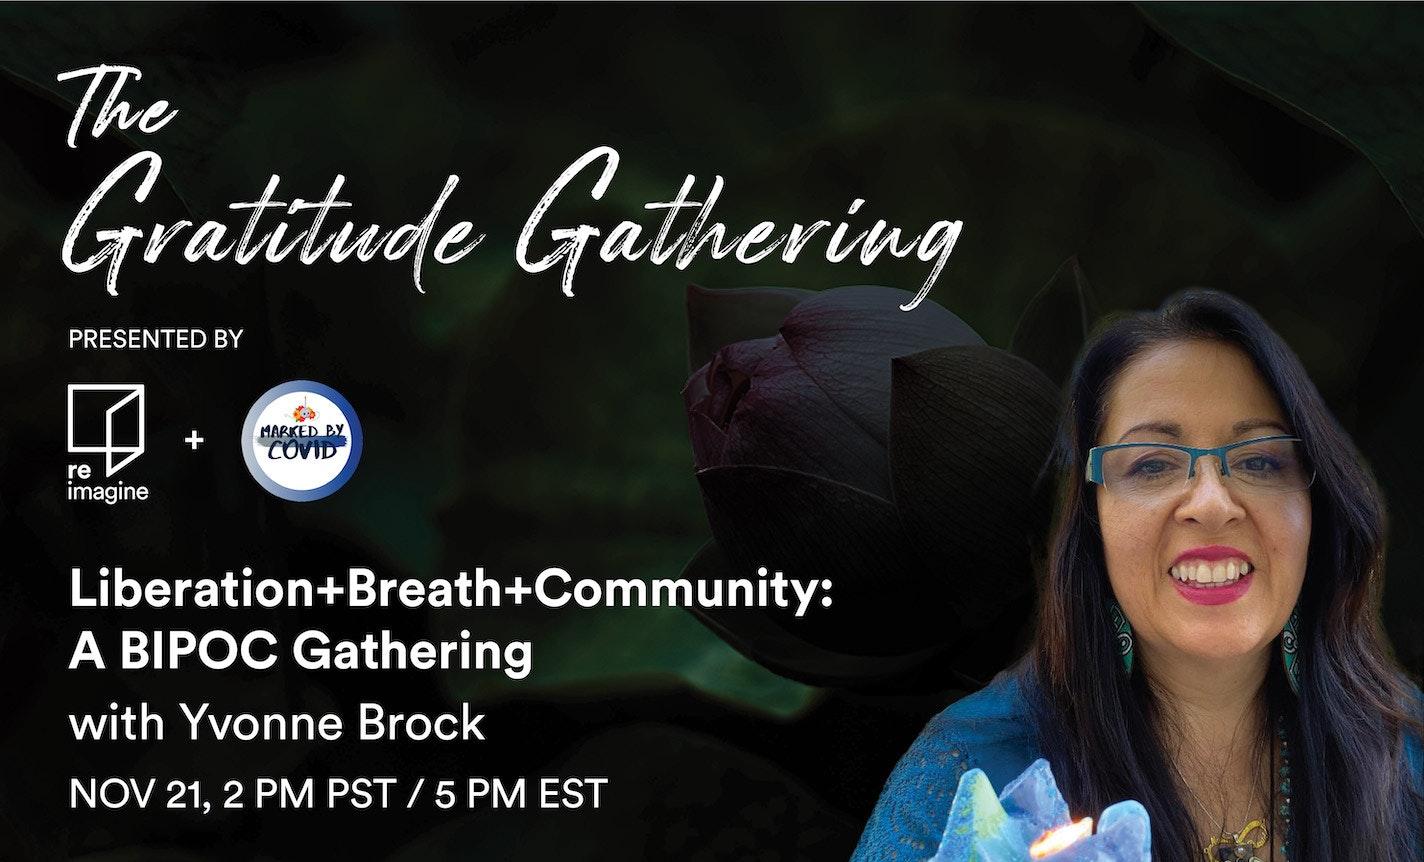 Liberation+Breath+Community: A BIPOC Gathering